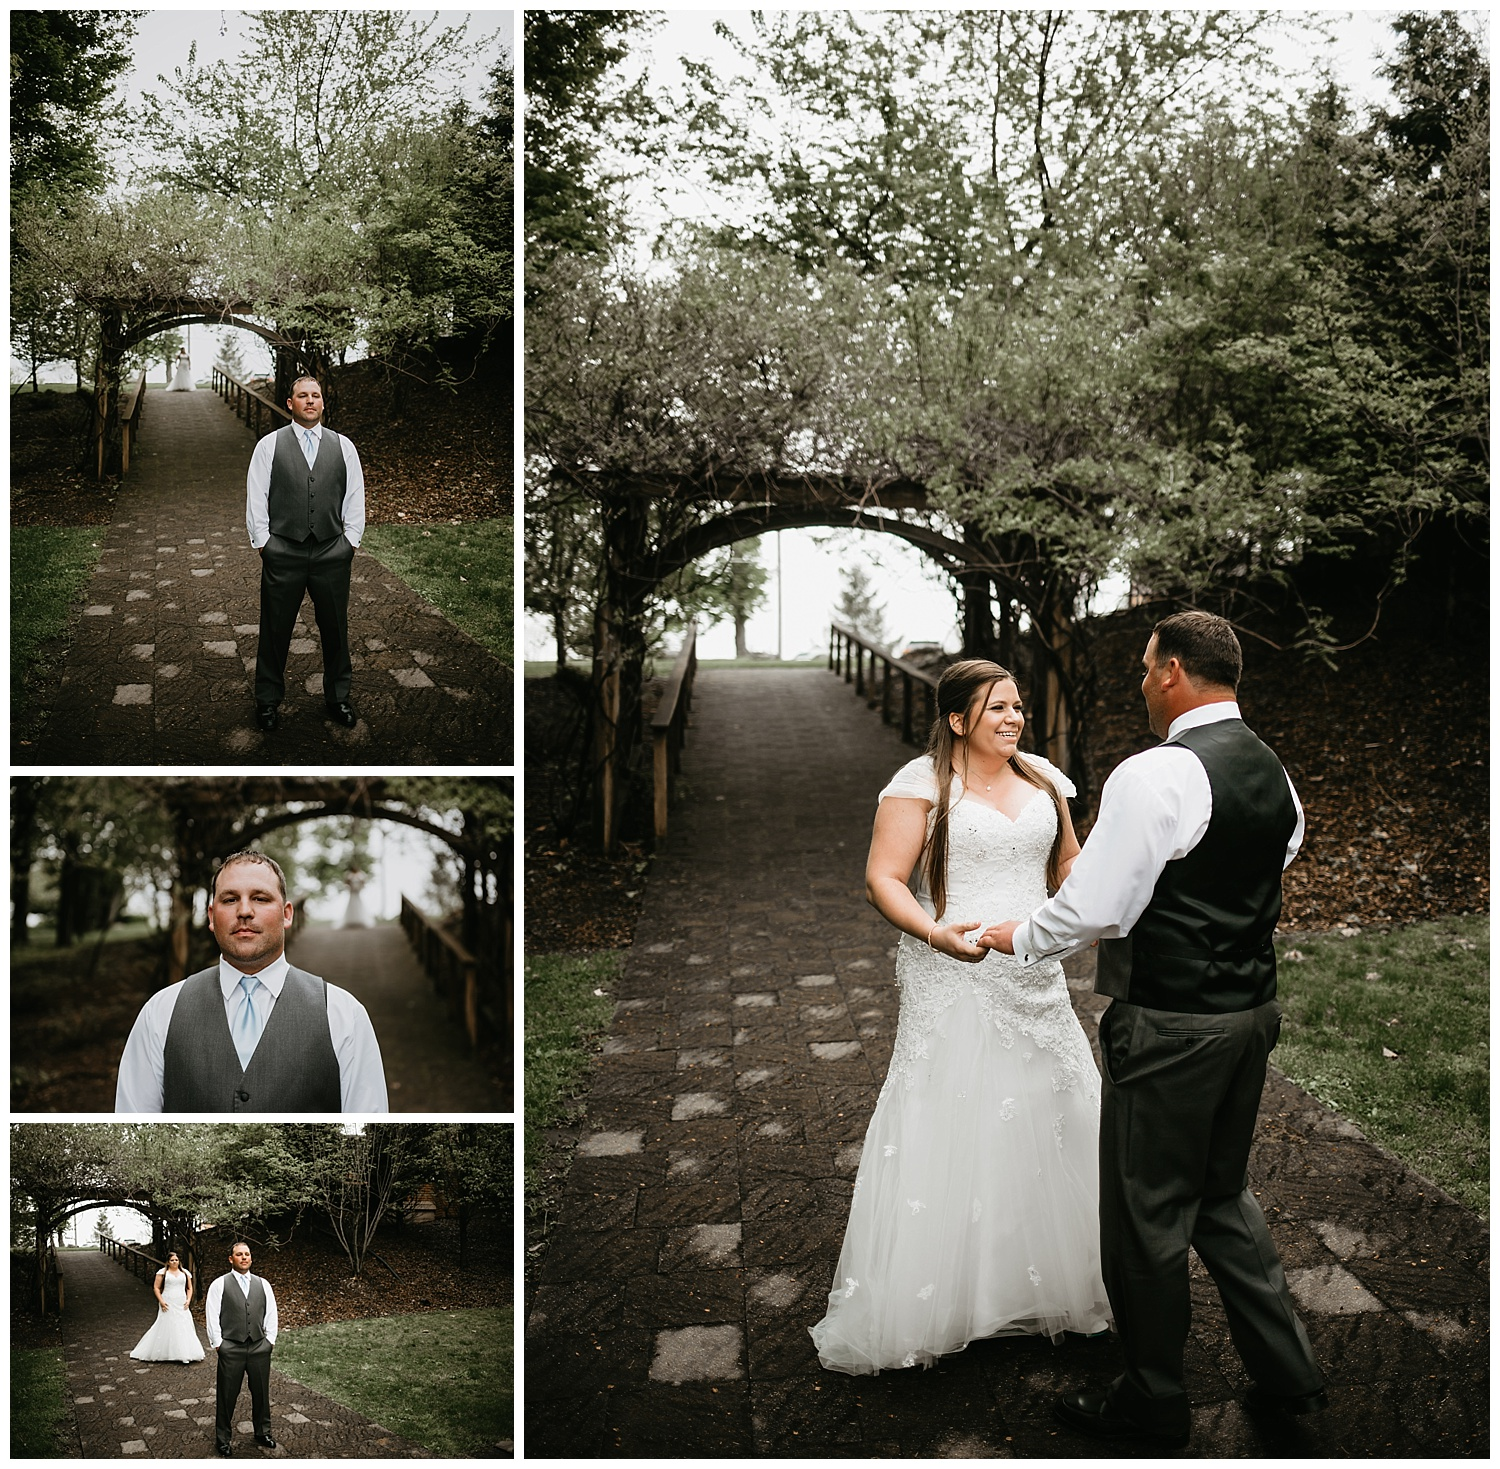 NEPA-wedding-photographer-at-the-Stroudsmoor-Country-Inn-Stroudsburg-PA_0010.jpg